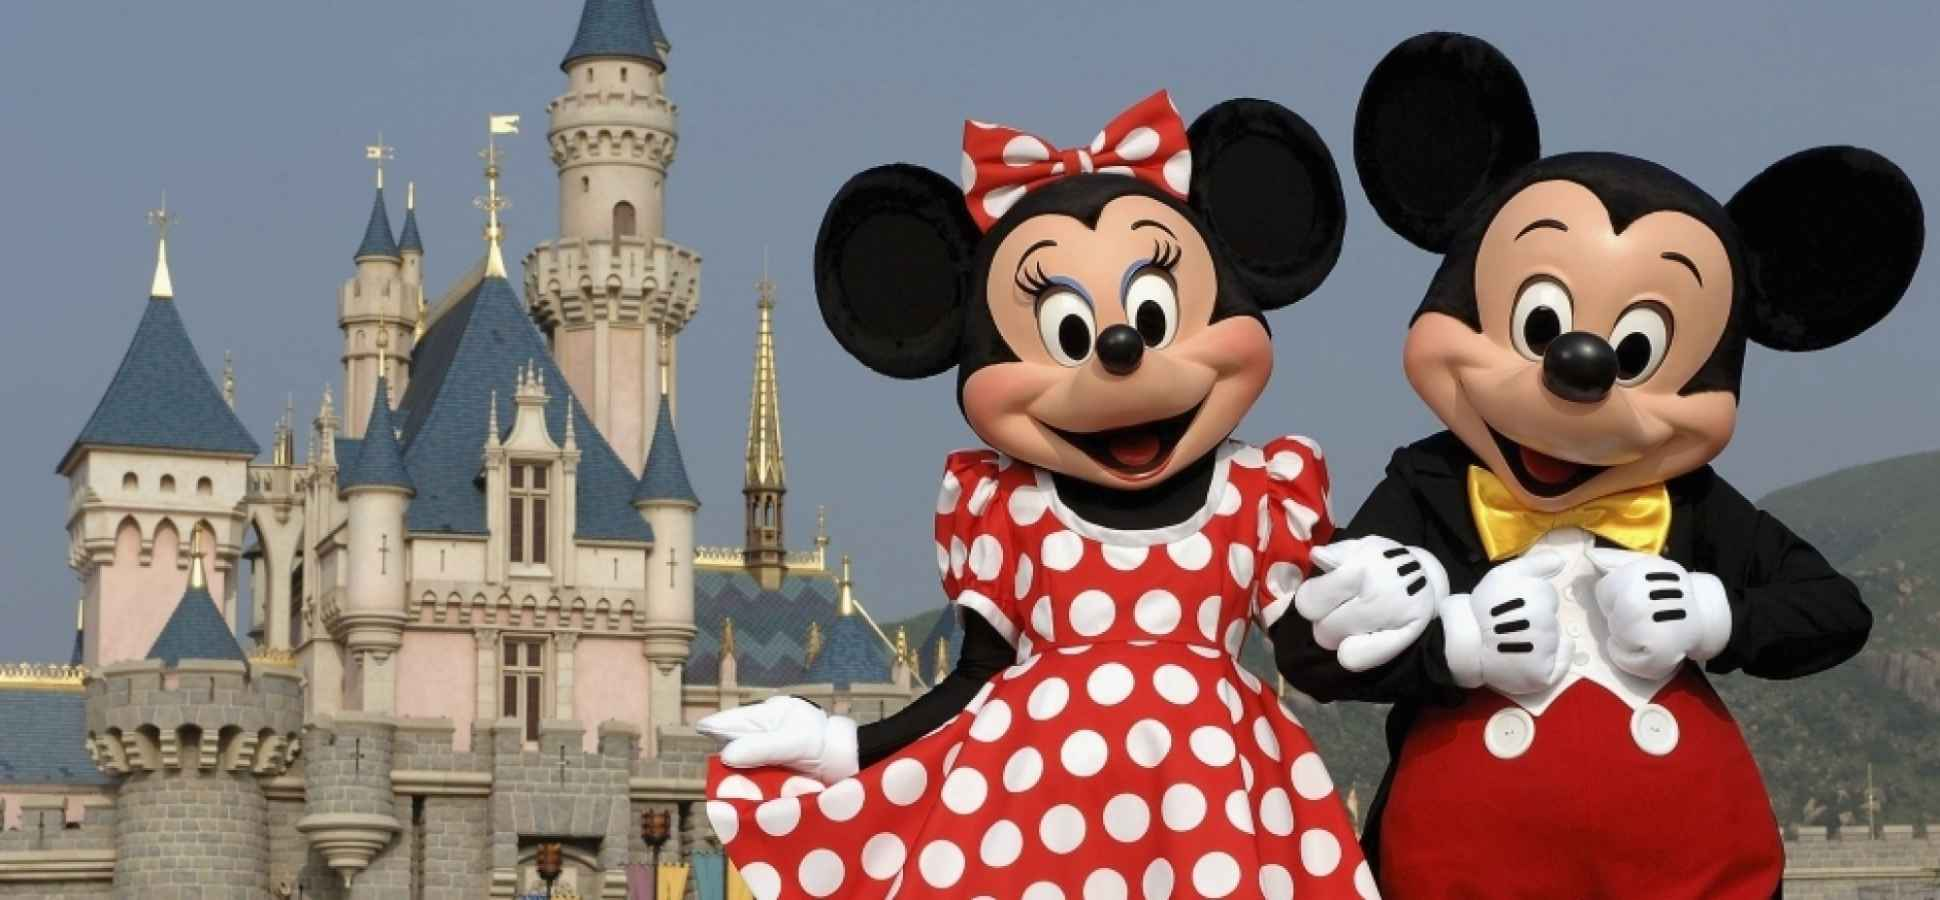 3 Barriers to Happiness and How This Disney Executive Overcomes Them